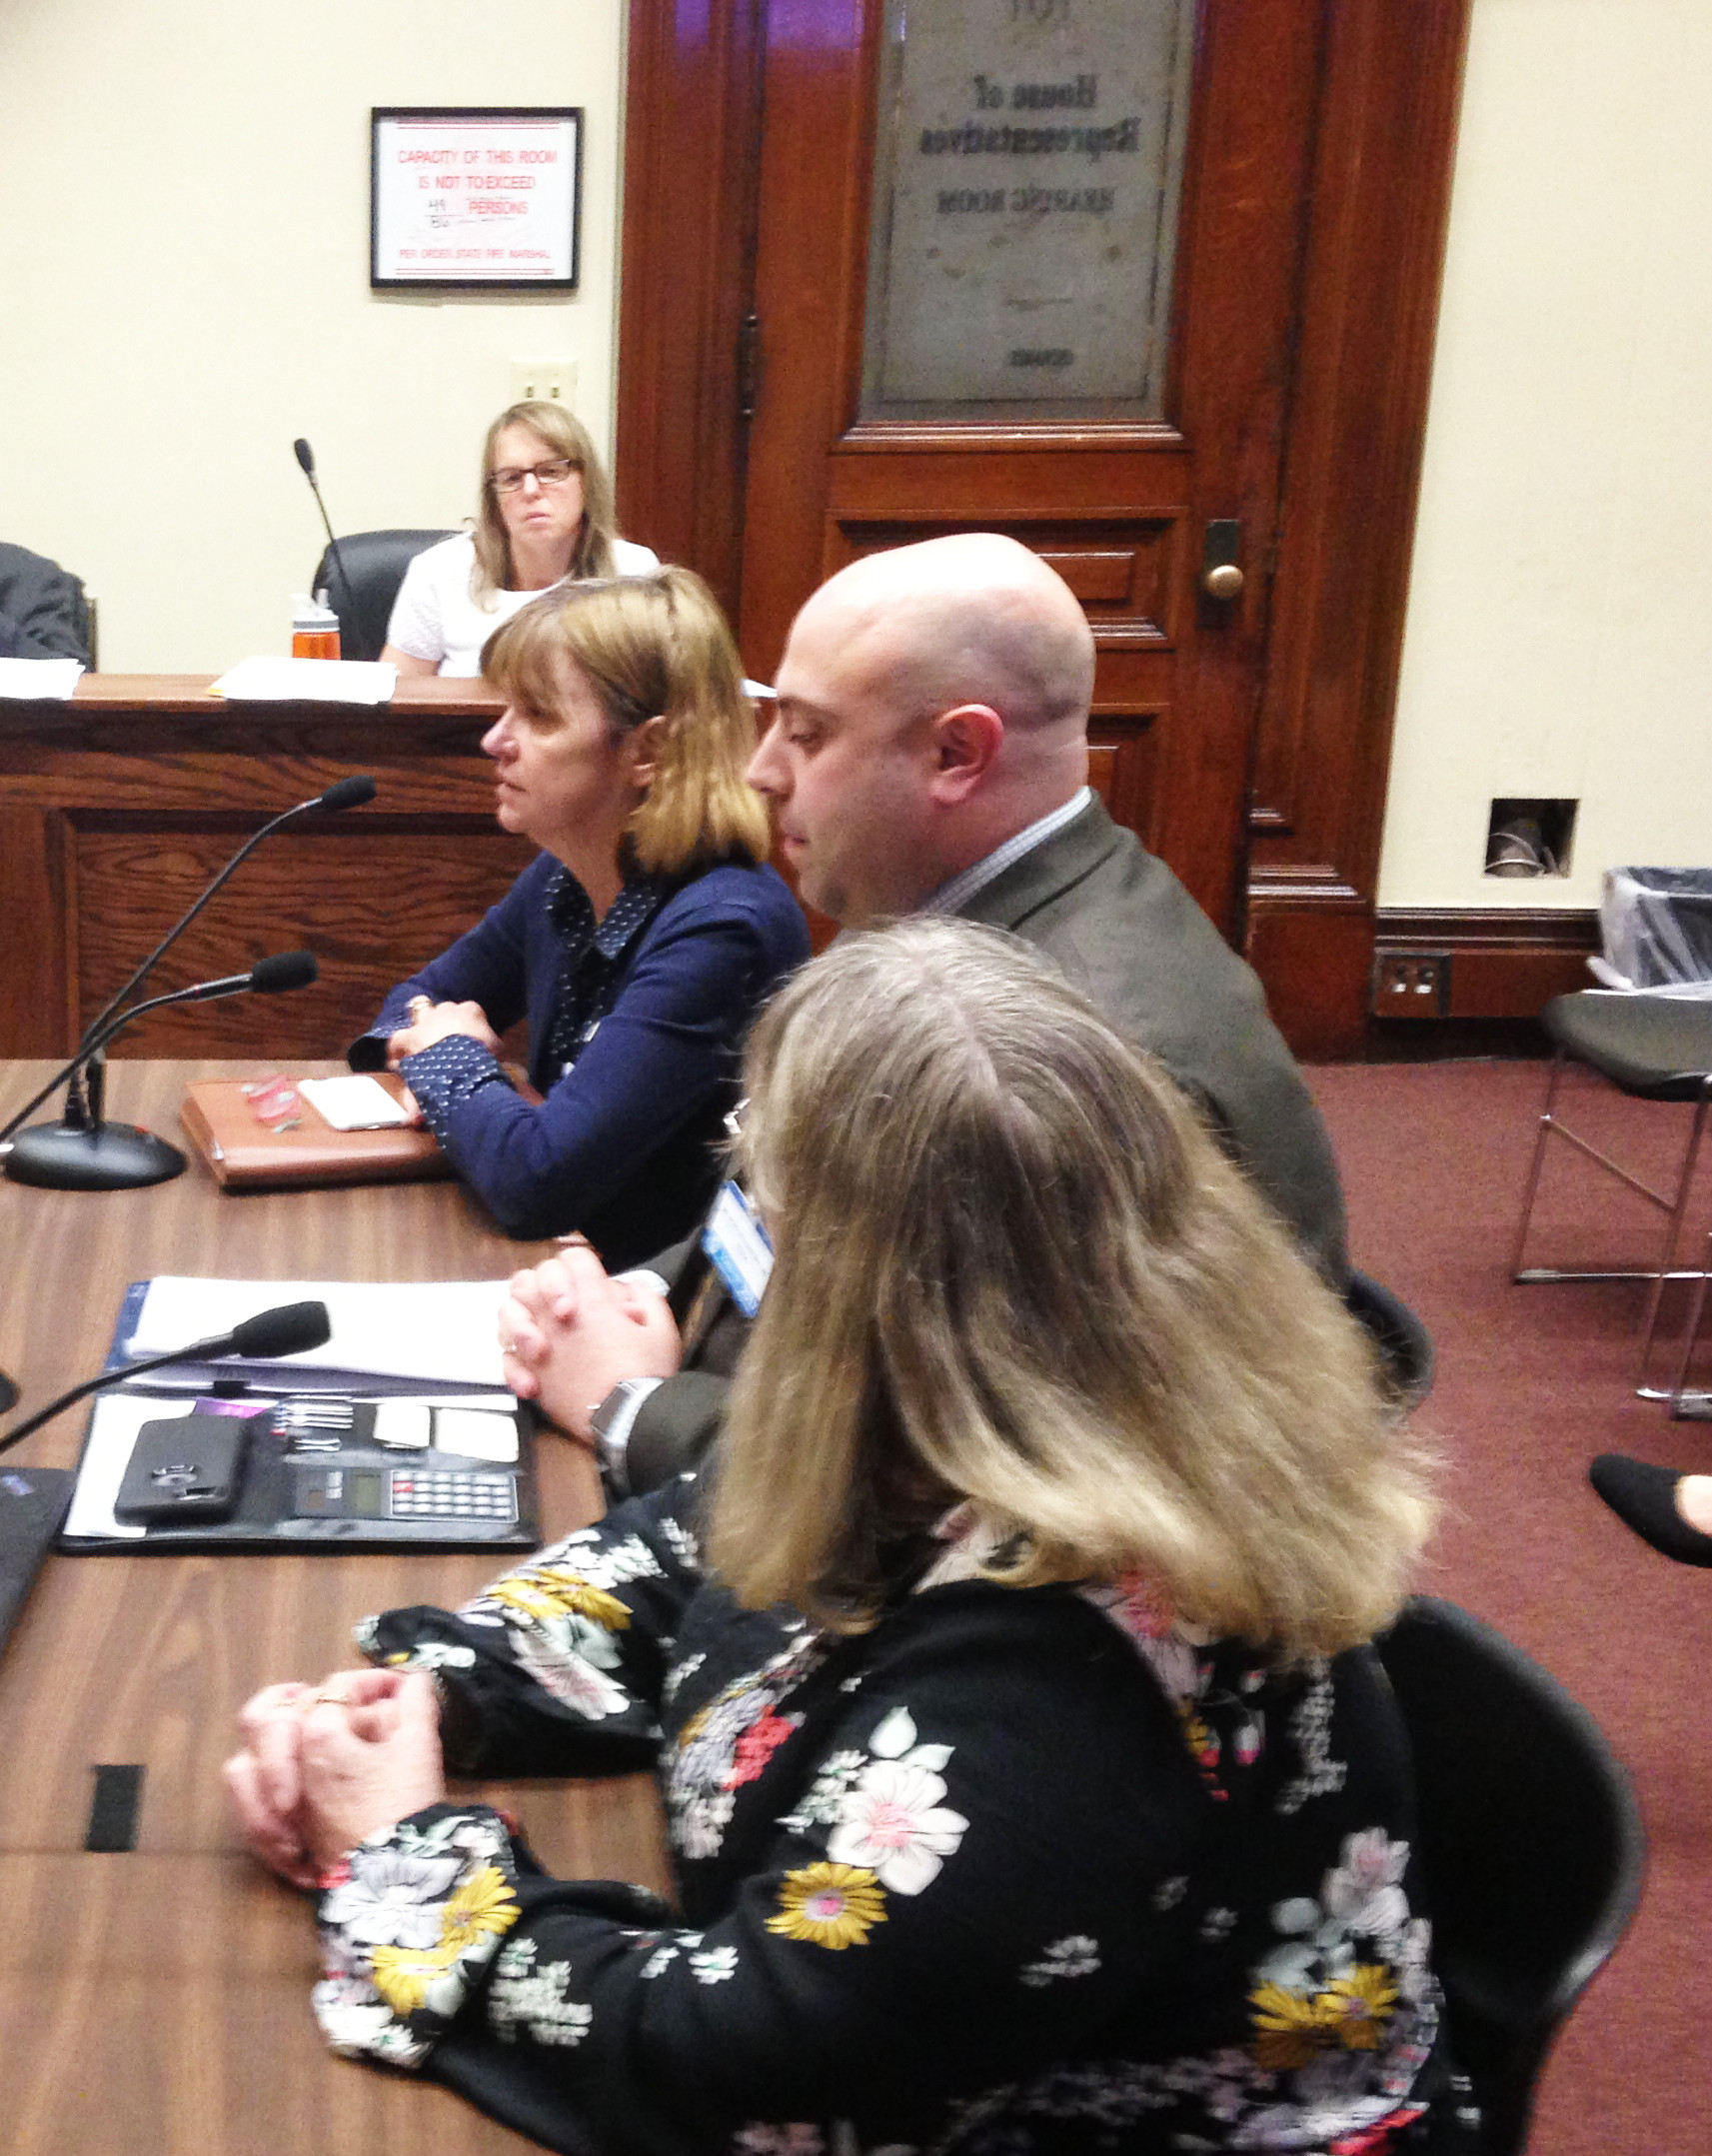 Virginia Burke, president and CEO of the Rhode Island Health Care Association. left, Nicholas Oliver, executive director of the R.I. Partnership for Home Care, and Gail Sheahan, owner of Consistent Care, offer testimony at the April 27 hearing of the House Committee on Oversight.